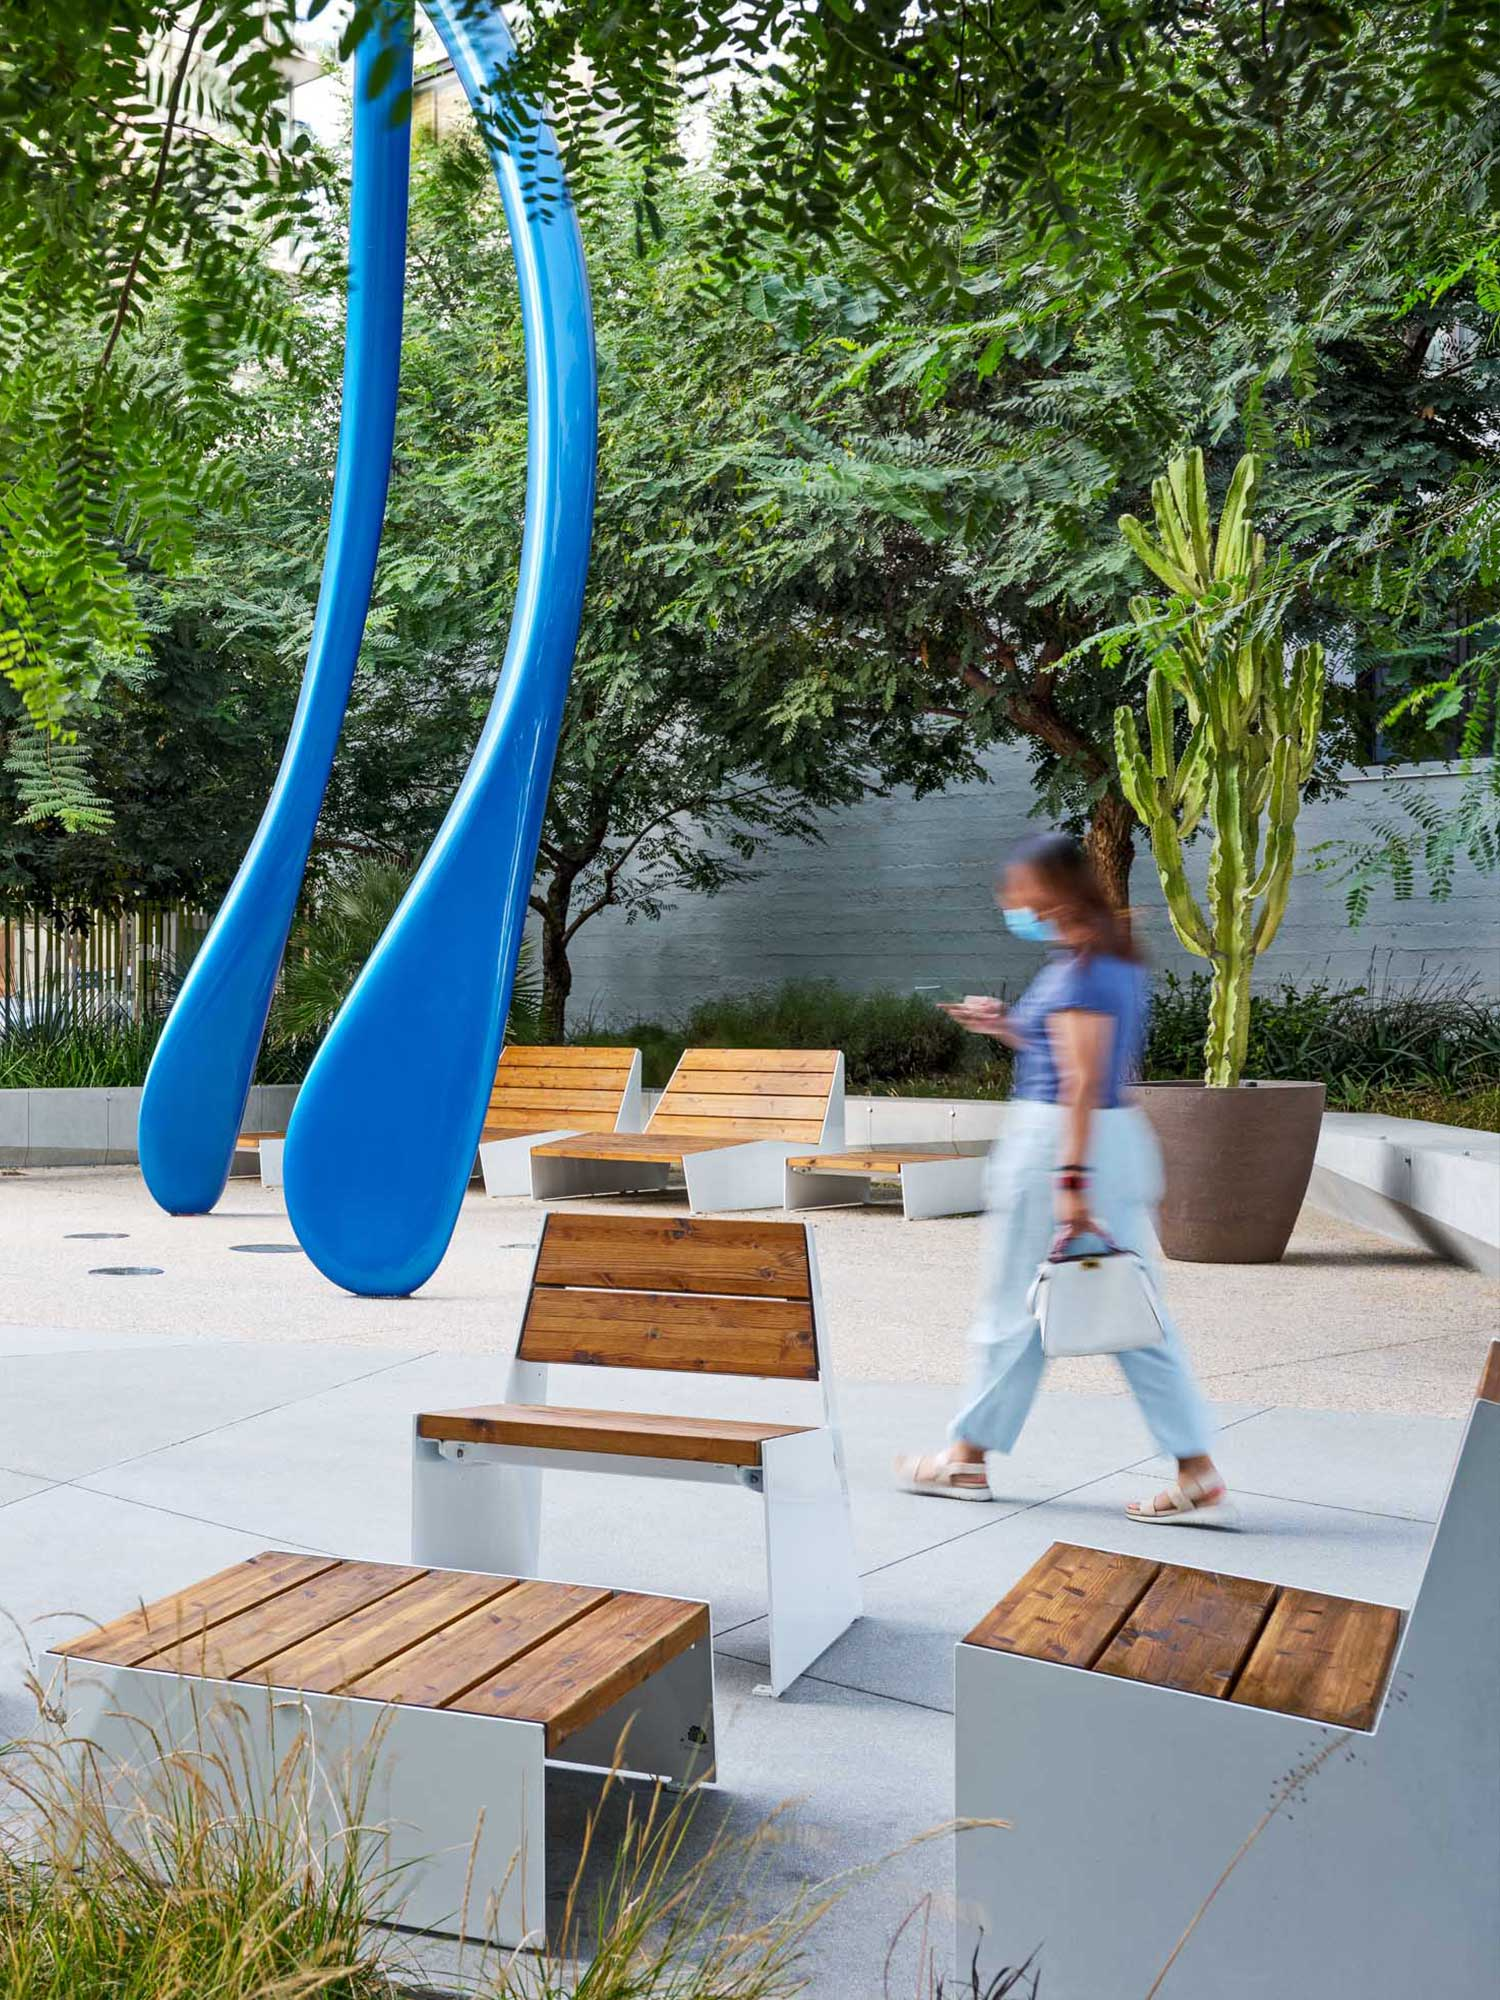 woman walking through a courtyard filled with wooden furniture and a large blue sculpture